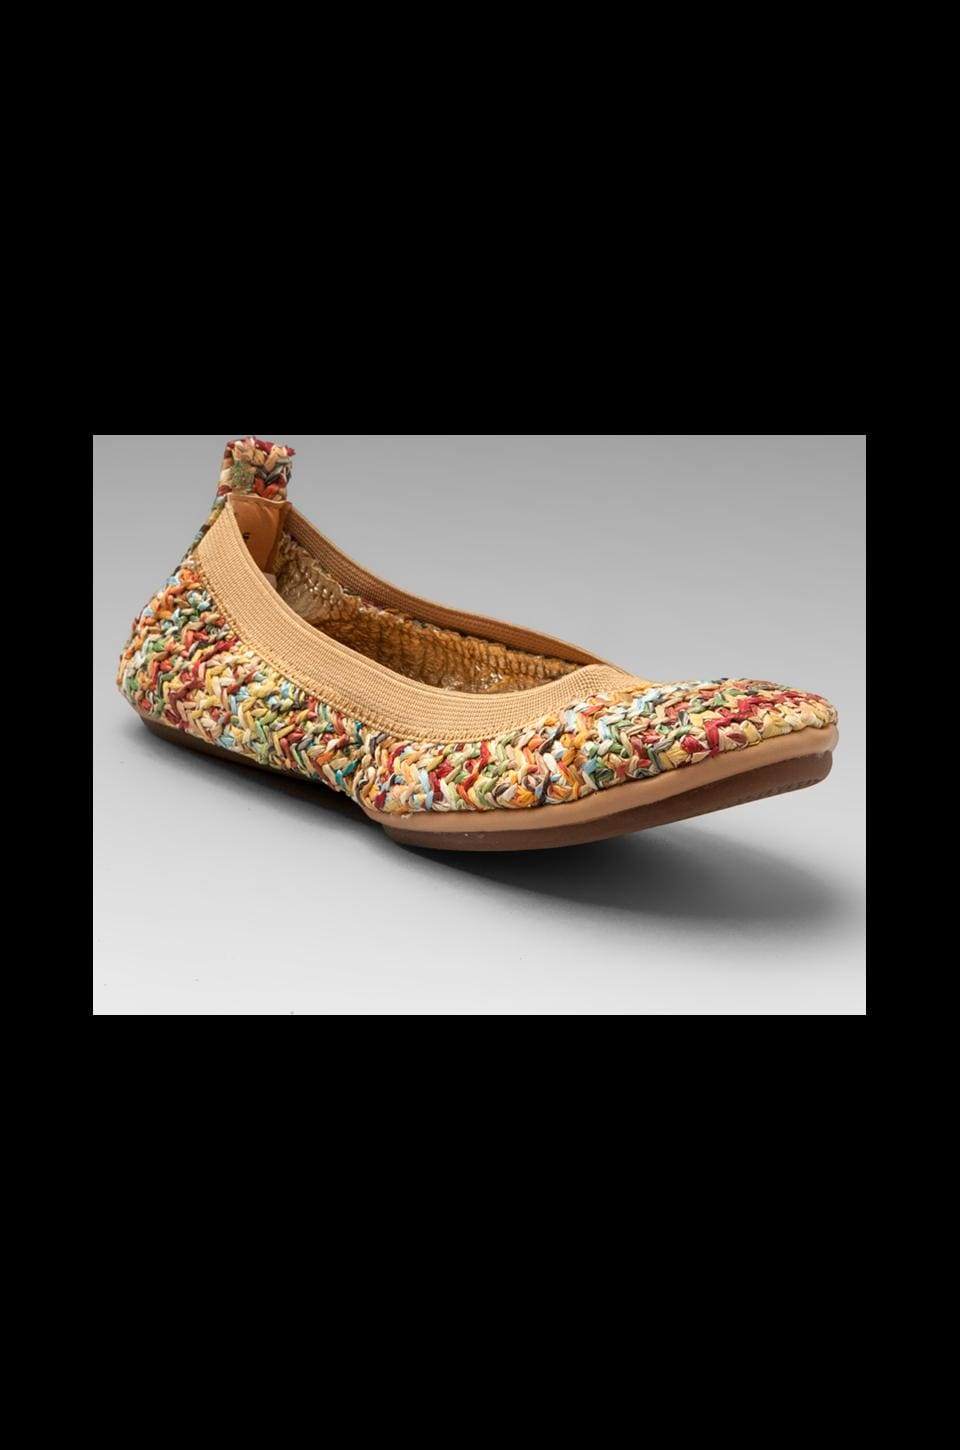 Yosi Samra Braided Straw Flat in Natural/Multi Stripe